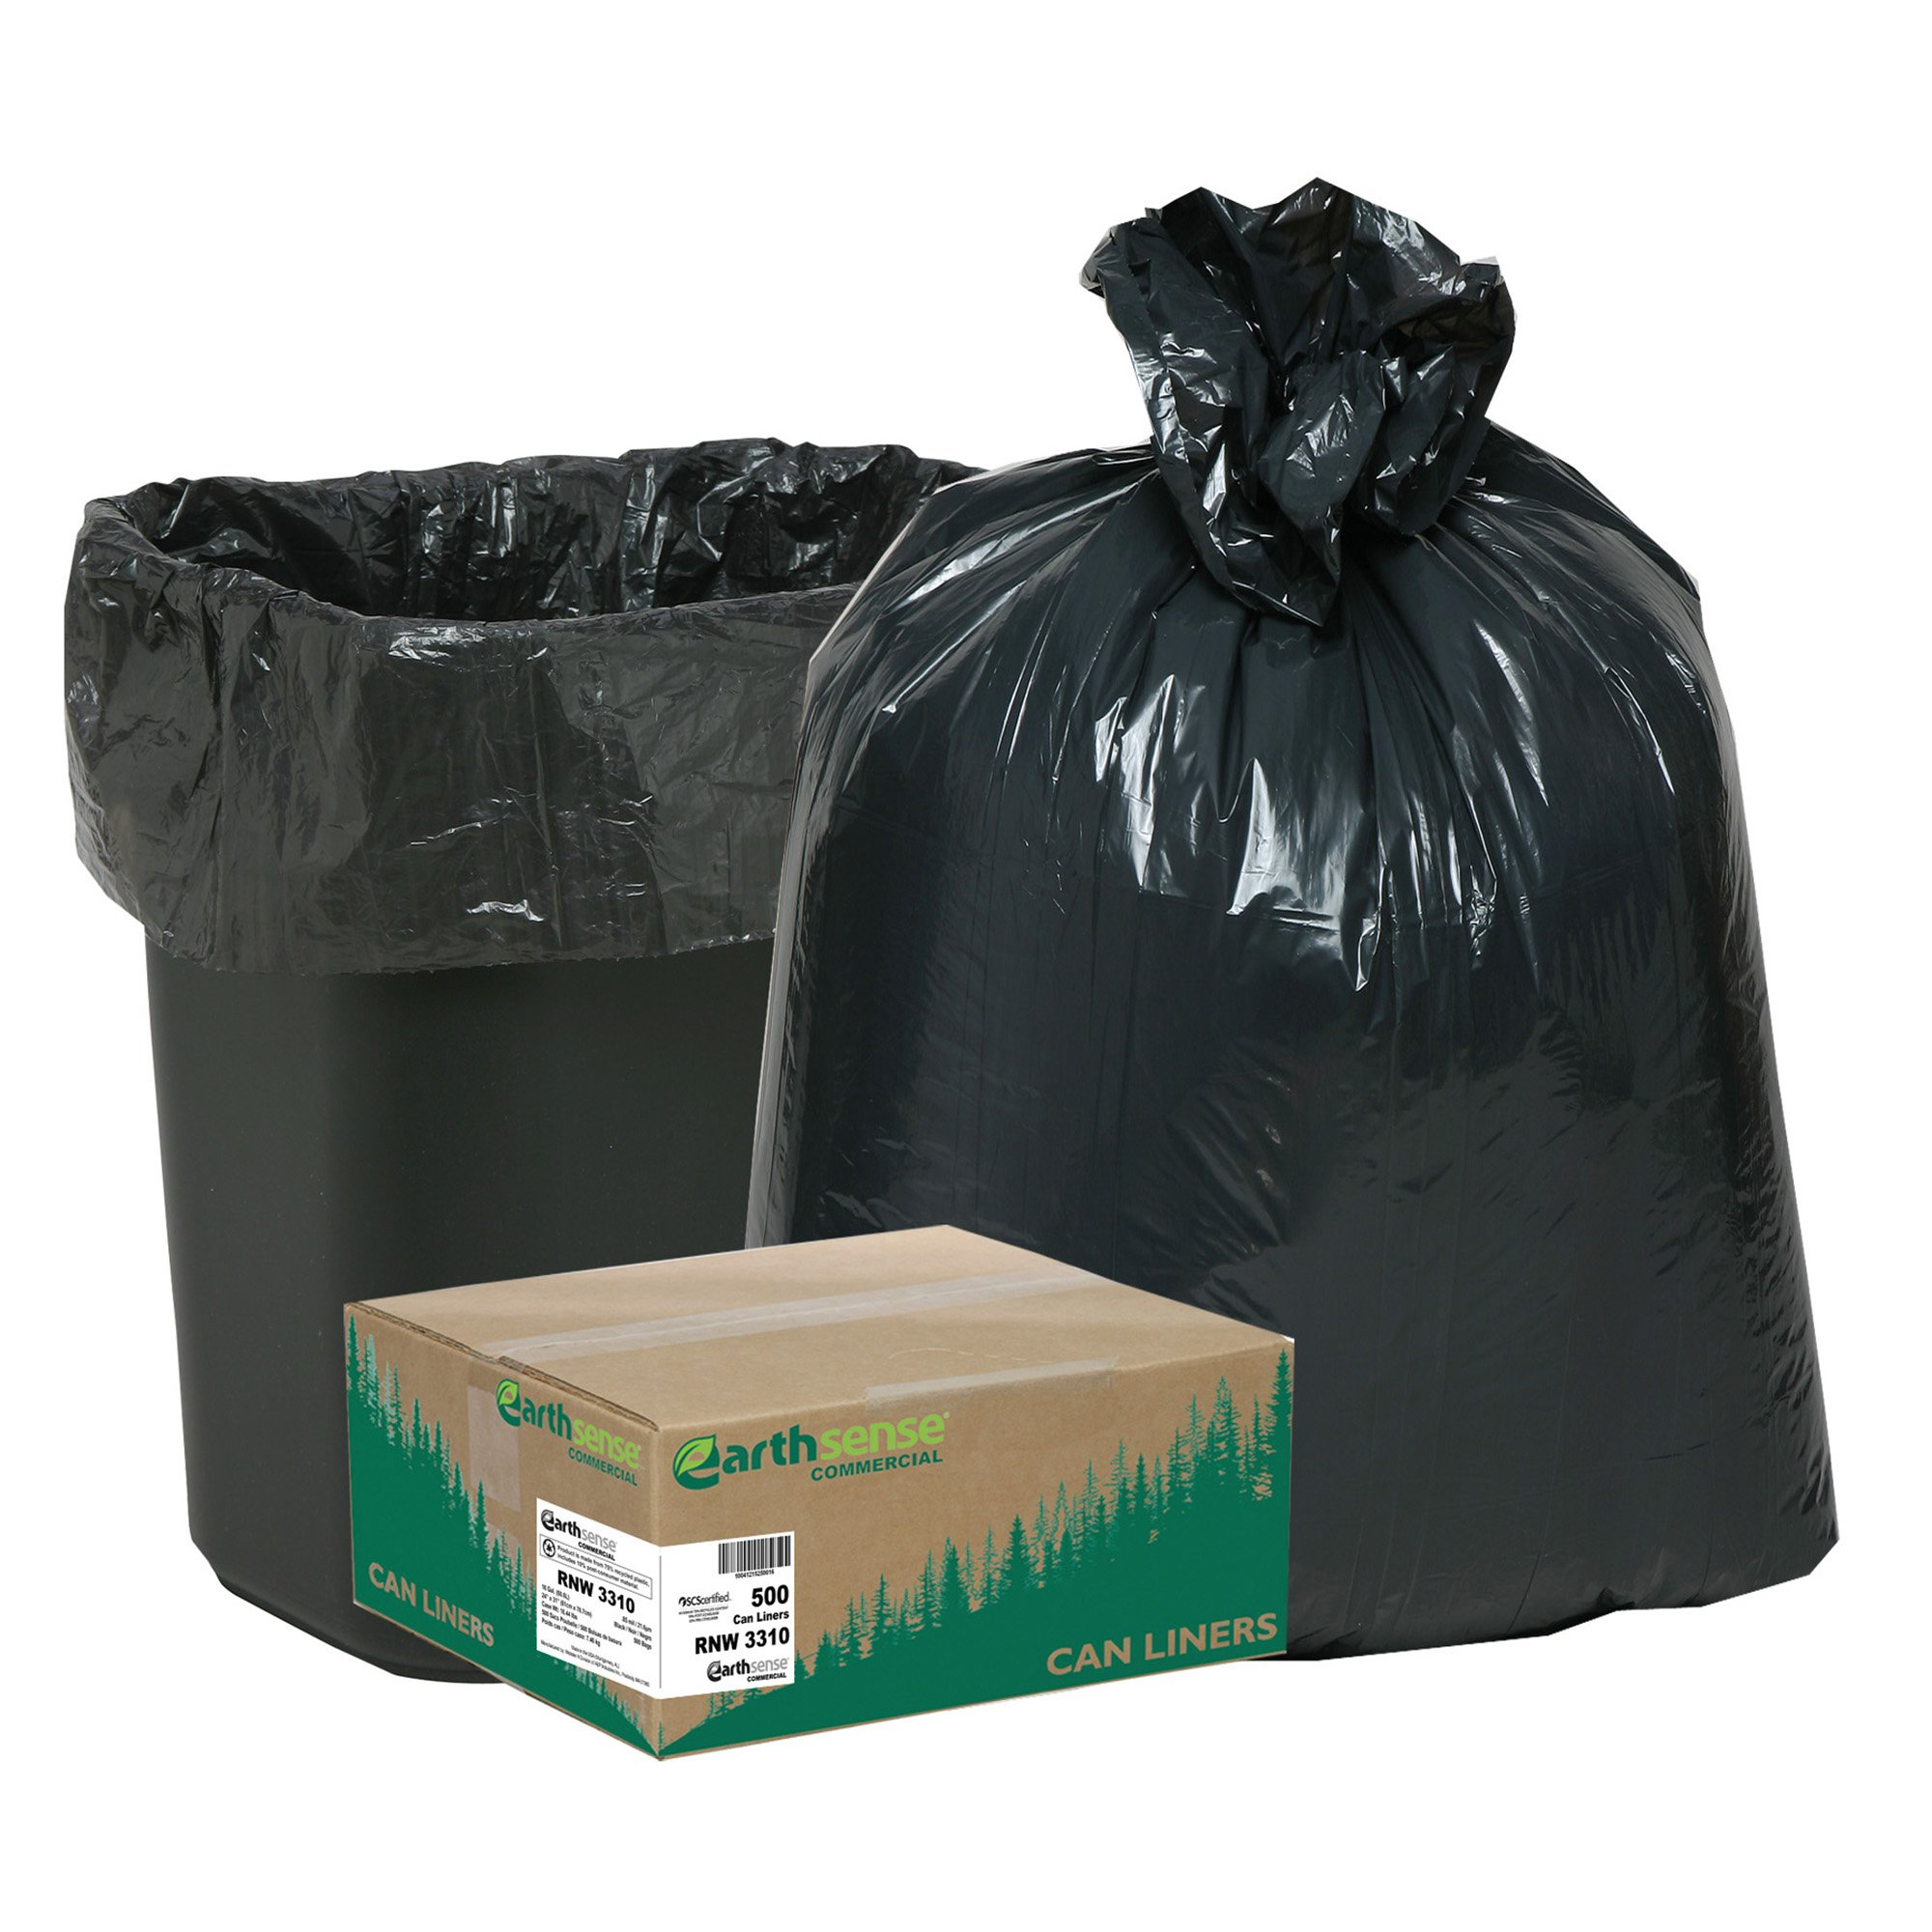 Earthsense Commercial RNW3310 Can Liner, 16 gal.85 mil, 24'' x 33'', Black (Pack of 500) by Earthsense Commercial